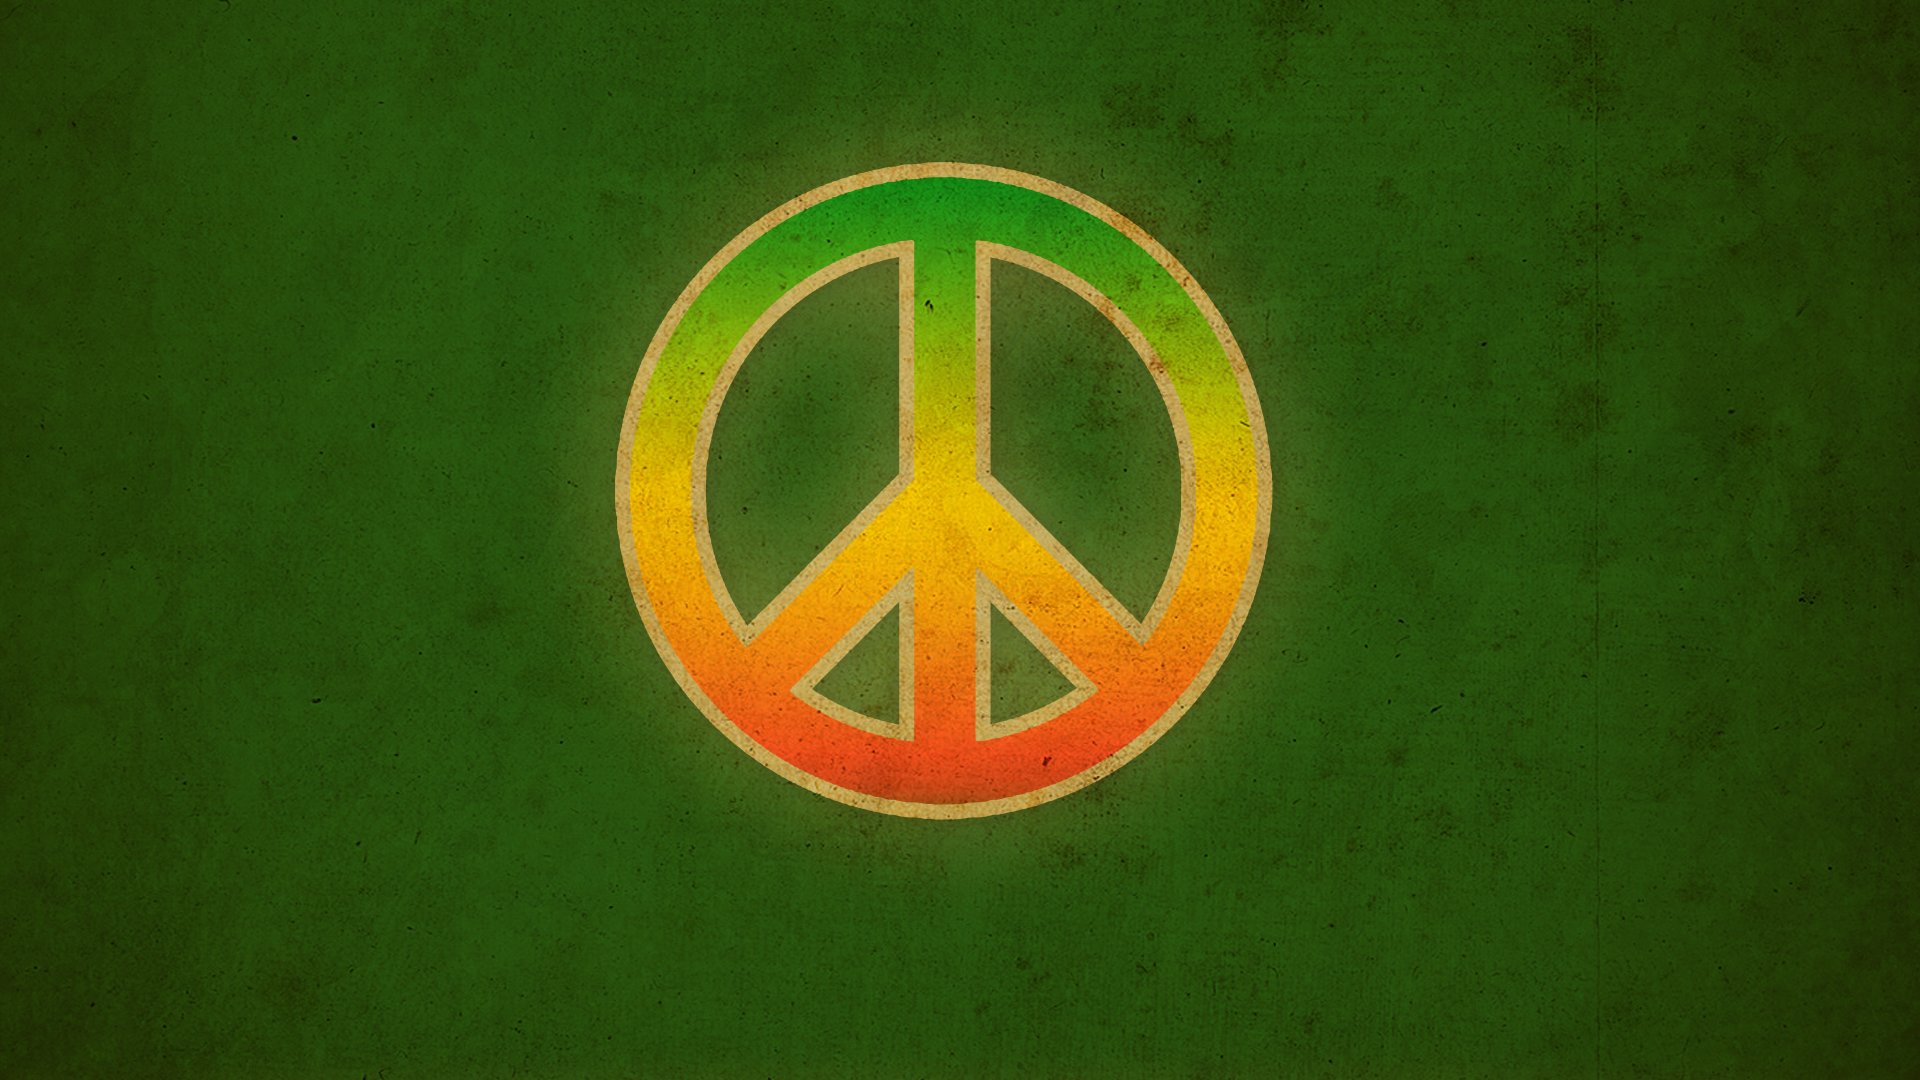 Peace wallpaper. HD Wallpapers Pinterest Hd